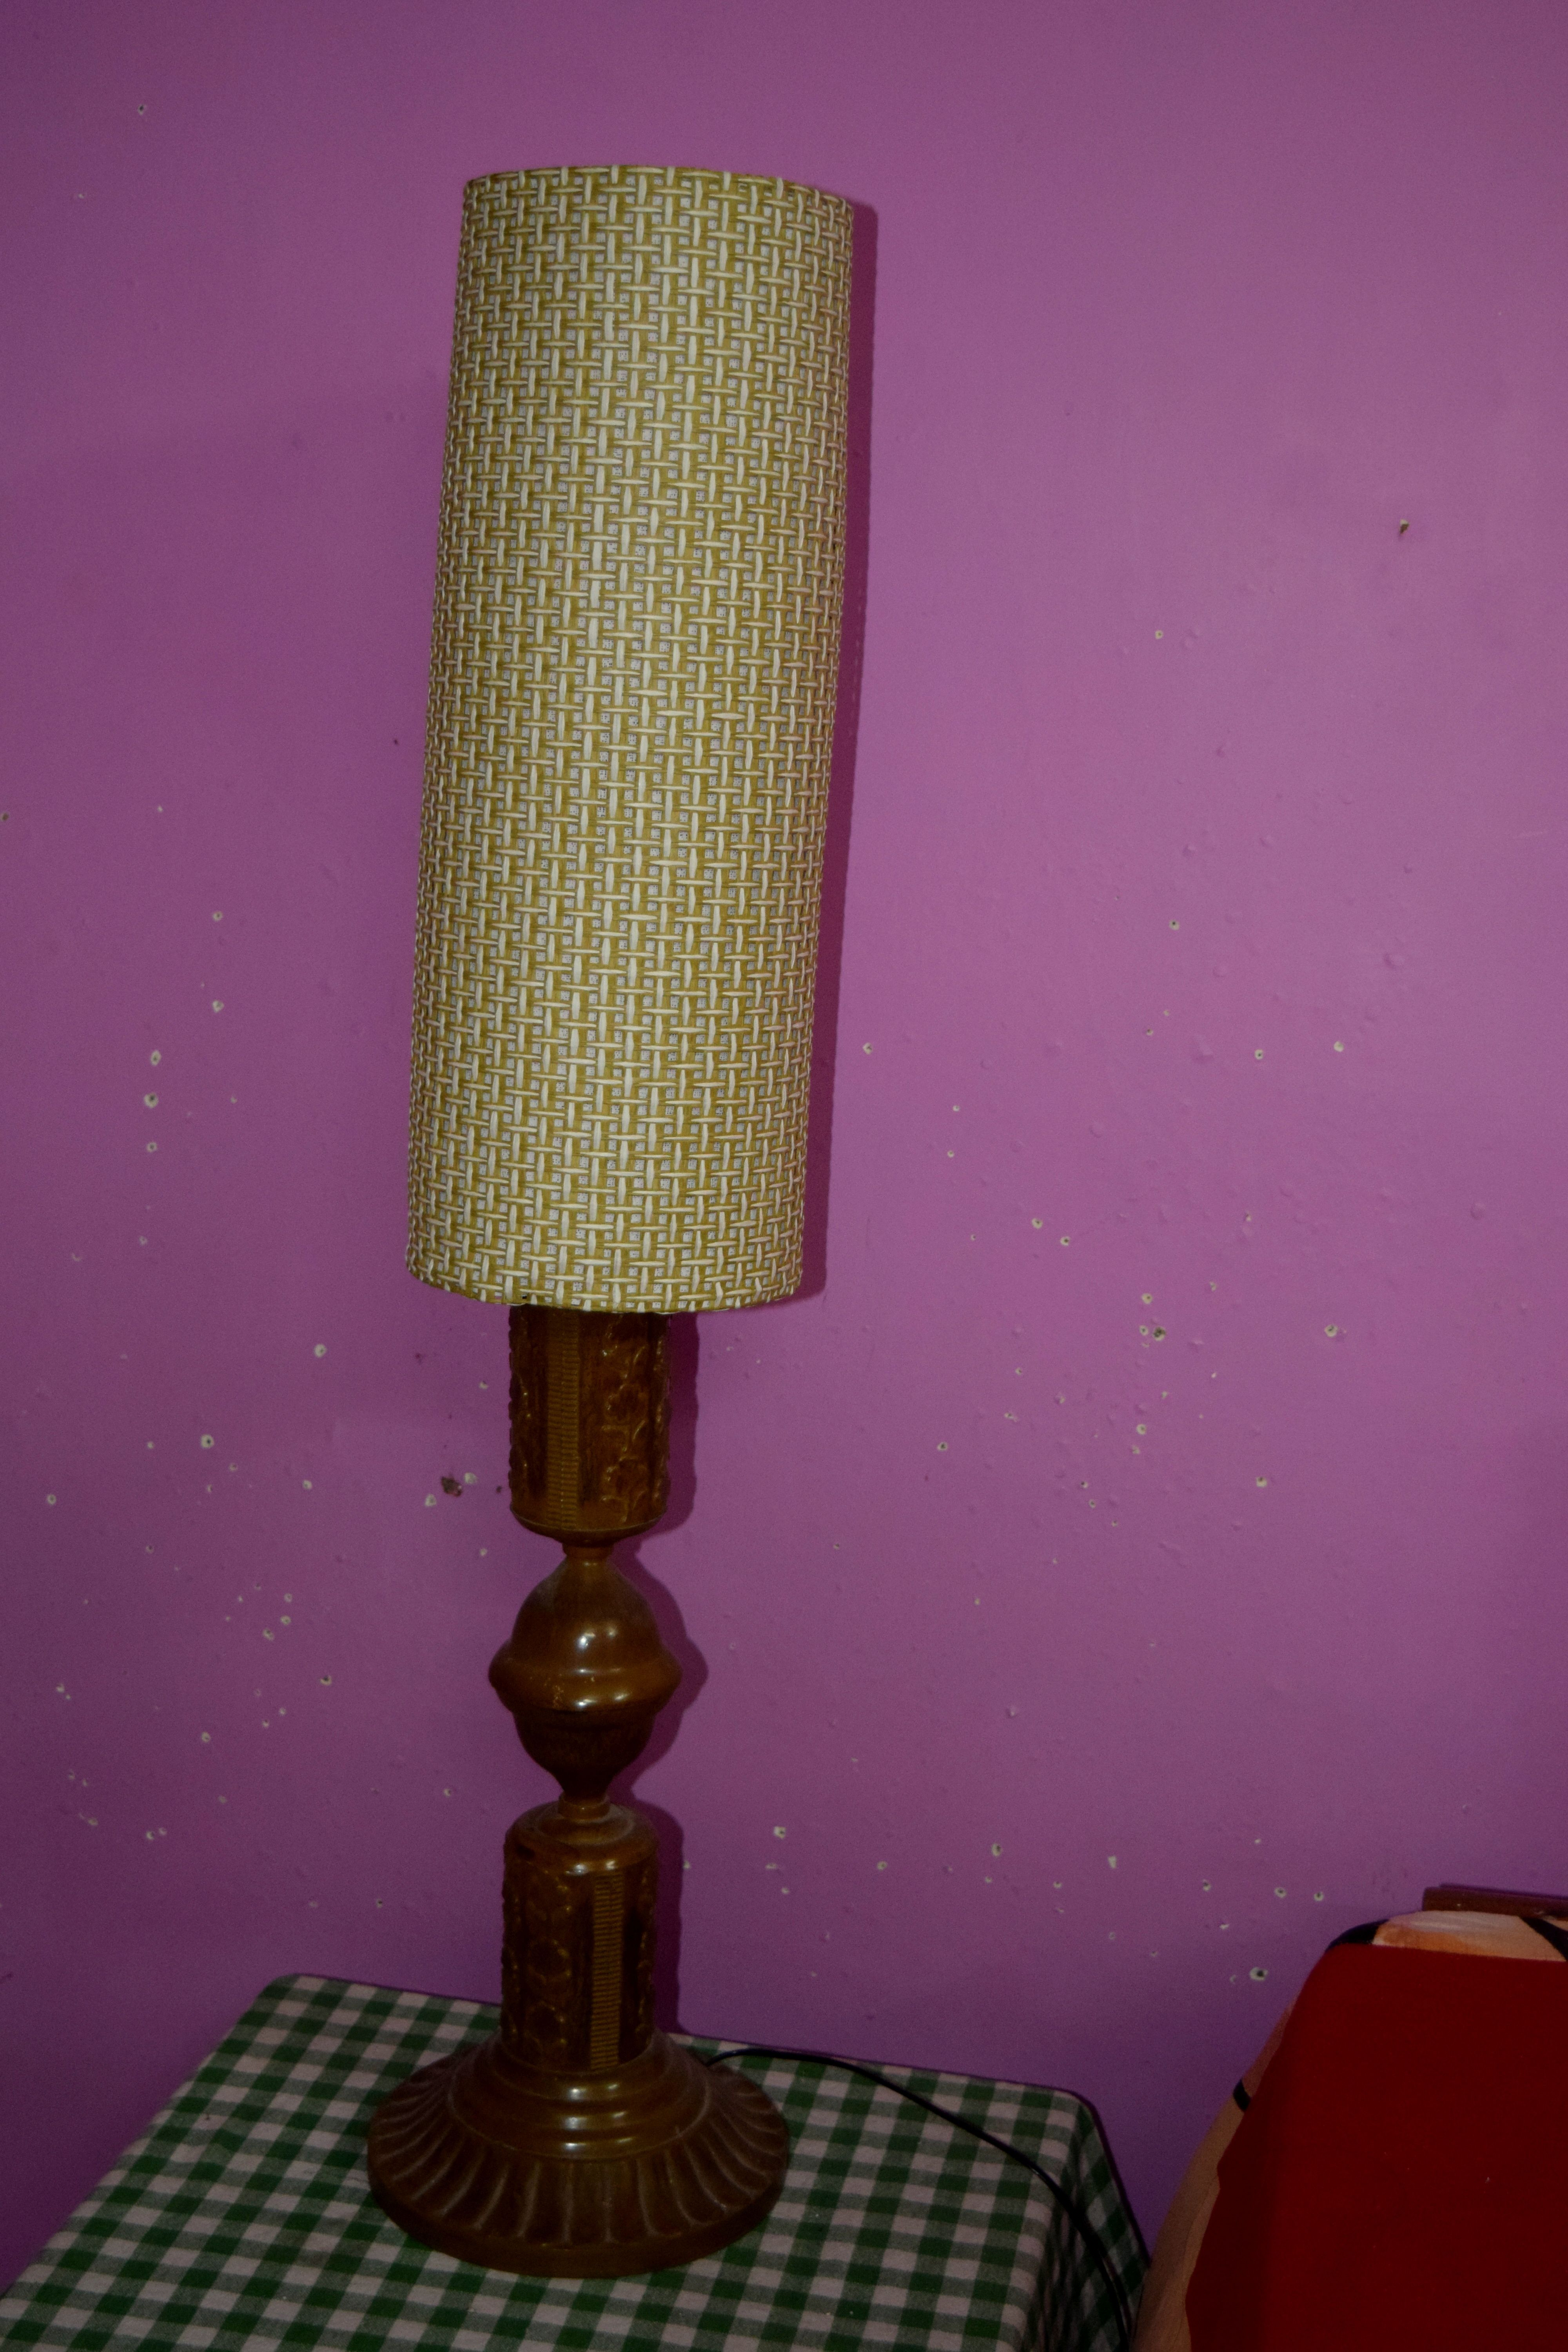 9) Fix The Lampshade Frame To The Lamp Stand